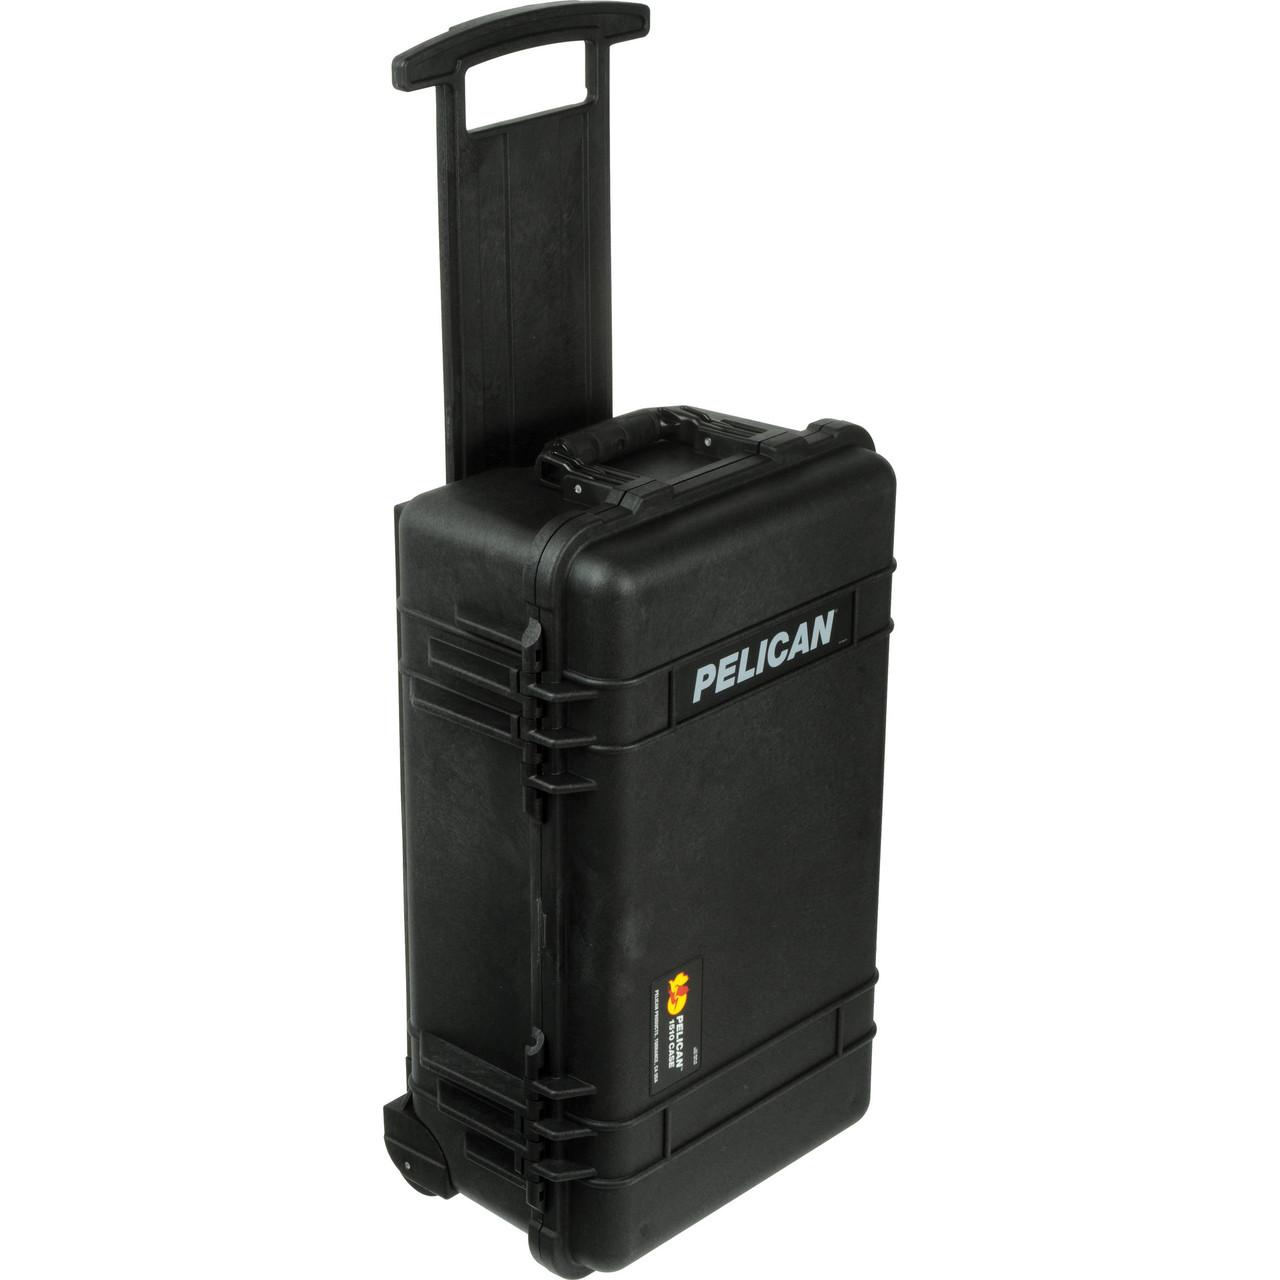 Pelican 1510 Carry-On Case with Foam Set (Black) (1510-000-110)